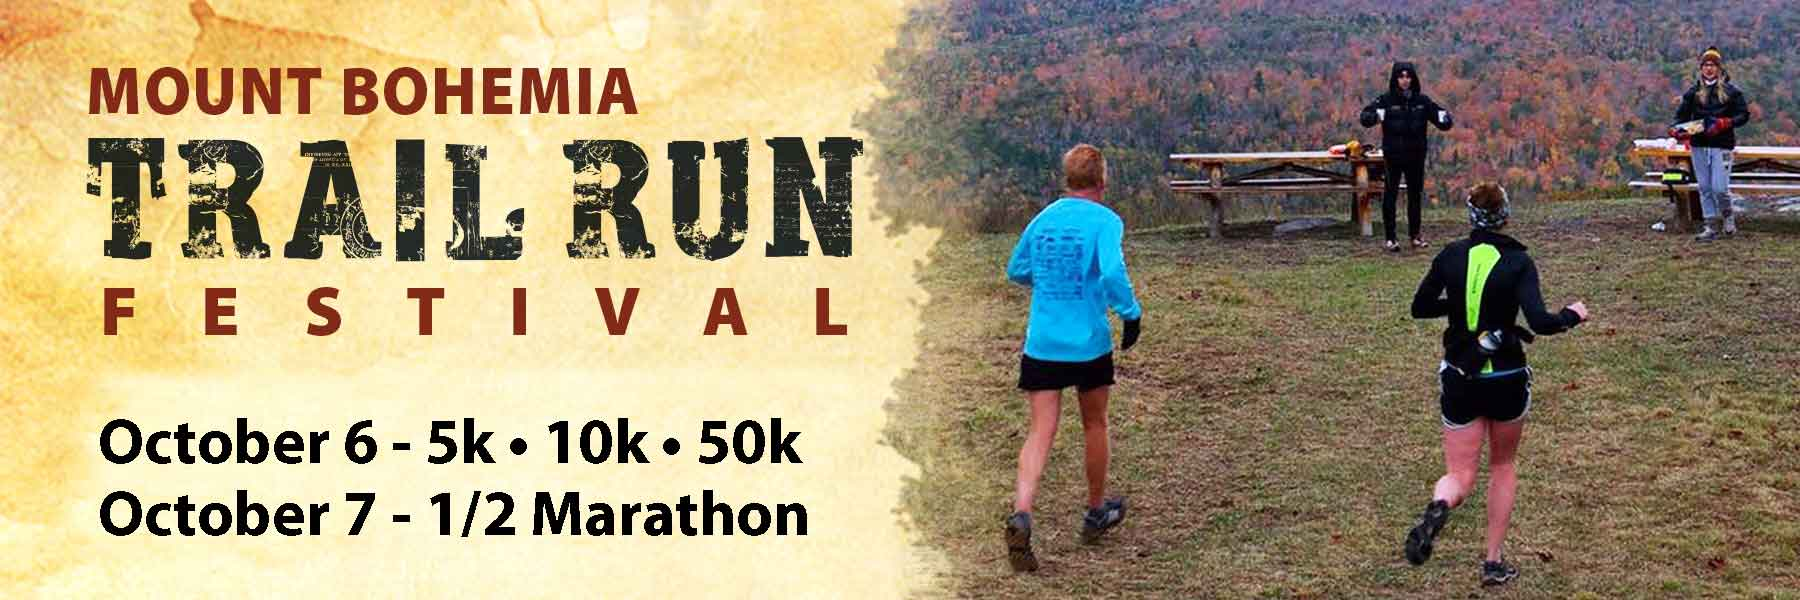 2018 mount bohemia trail run festival